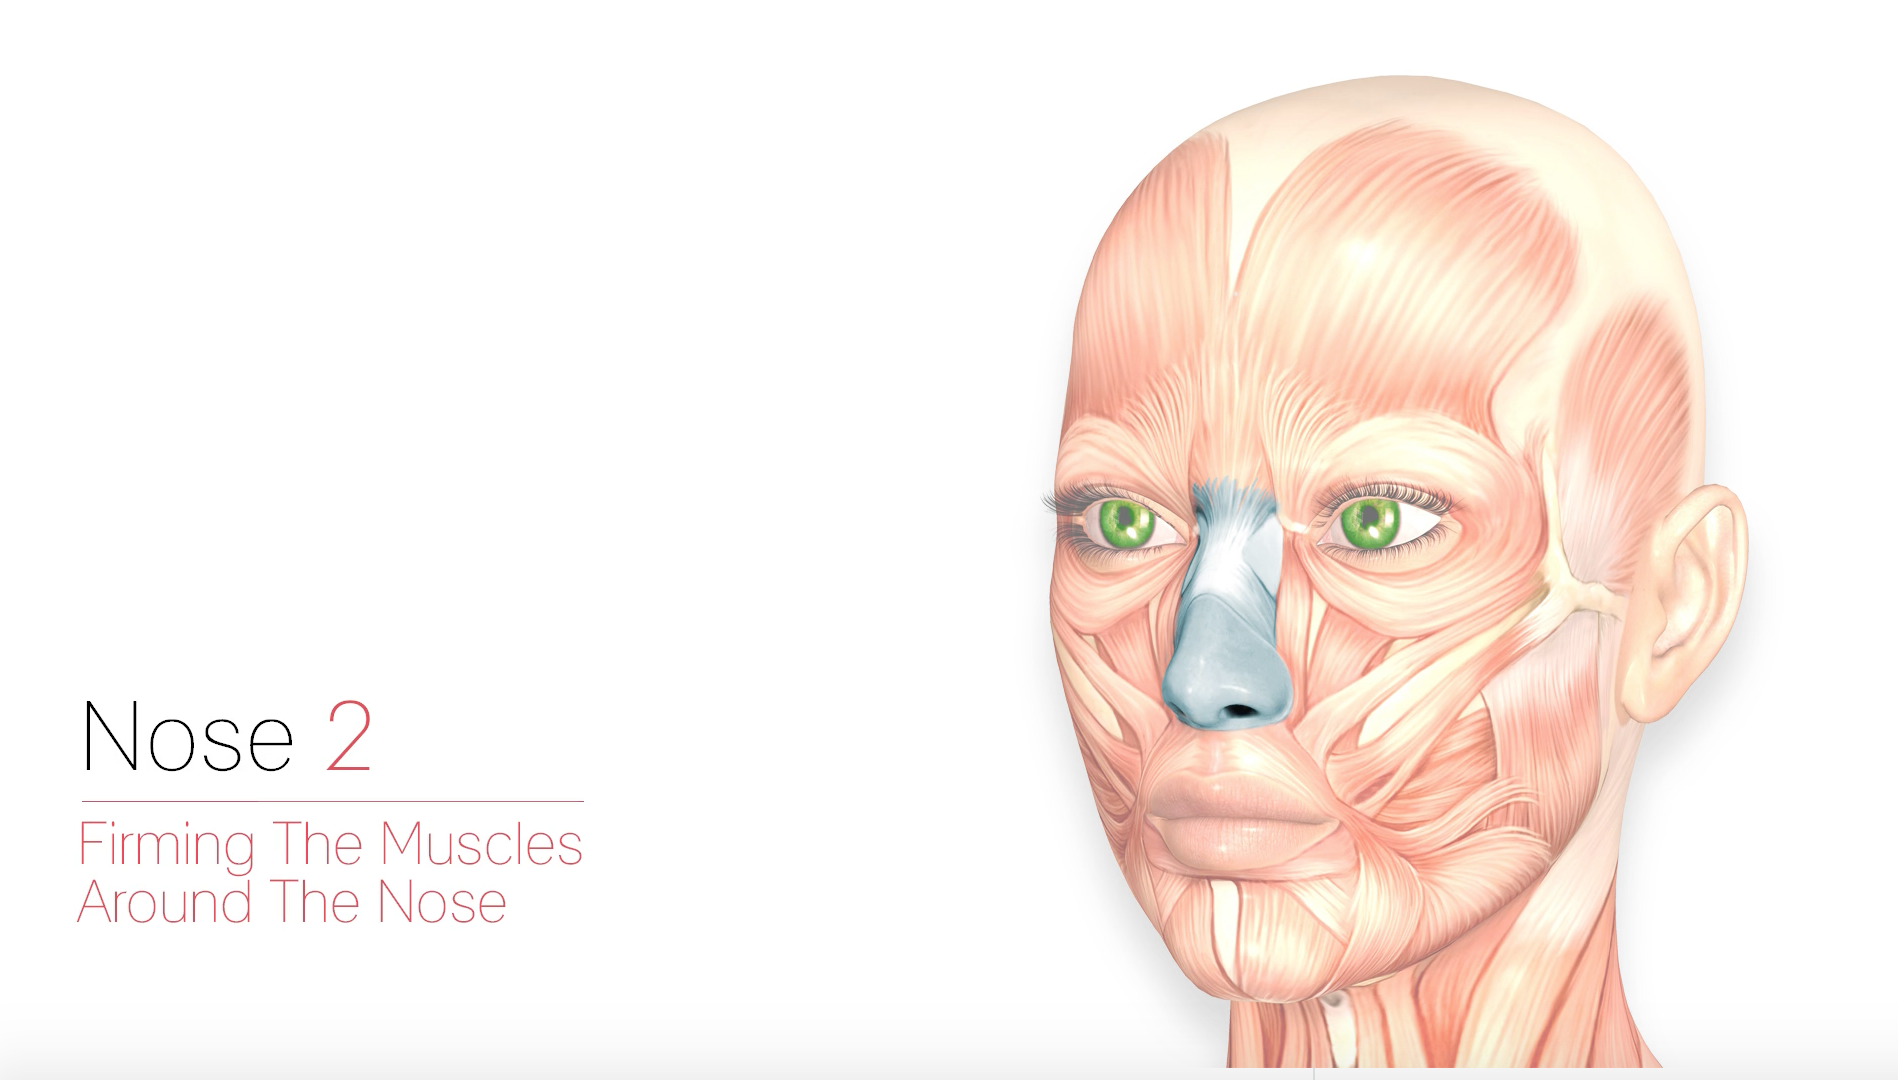 Nose 2 – Firming the Muscles Around The Nose